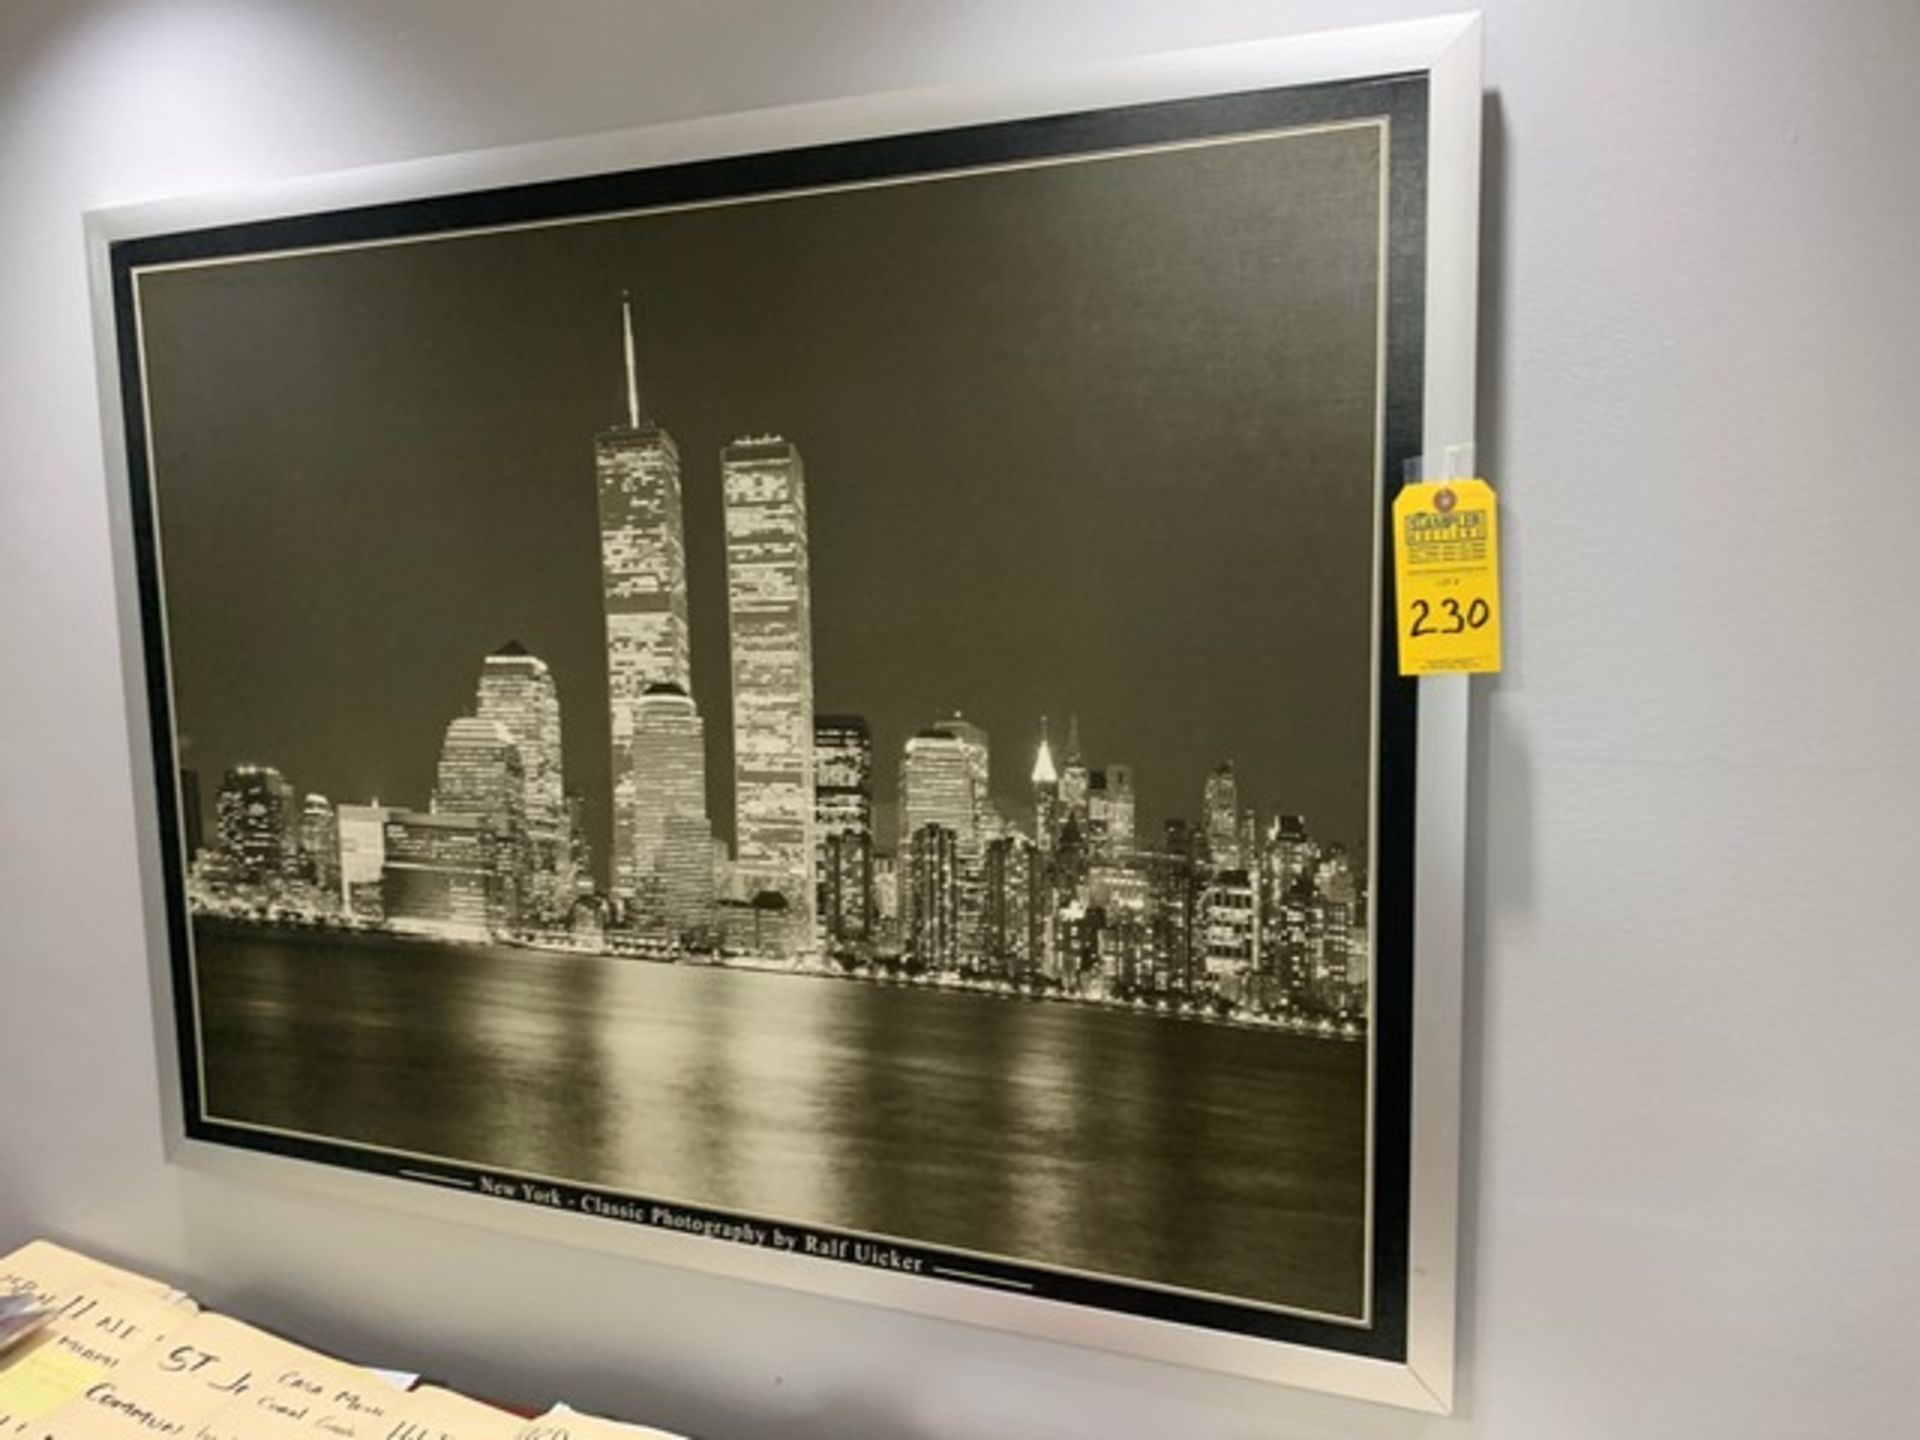 Lot 230 - ARTWORK - NEW YORK CITY